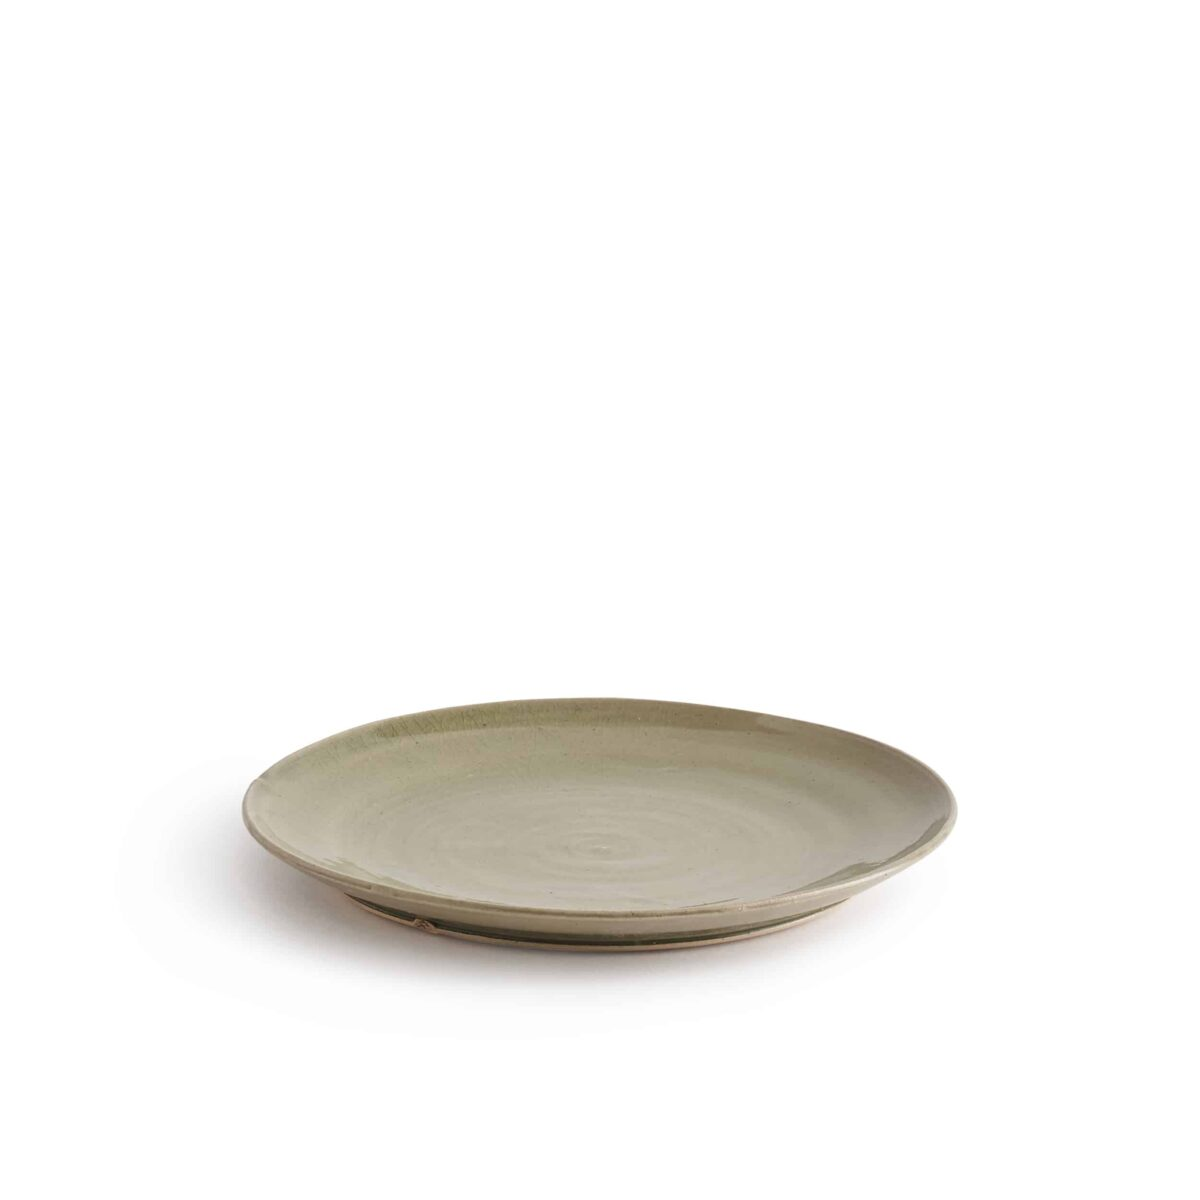 Marland Side Plate Sage Green – Another Country – Photo Credit Yeshen Venema – web ready -21.11.184237